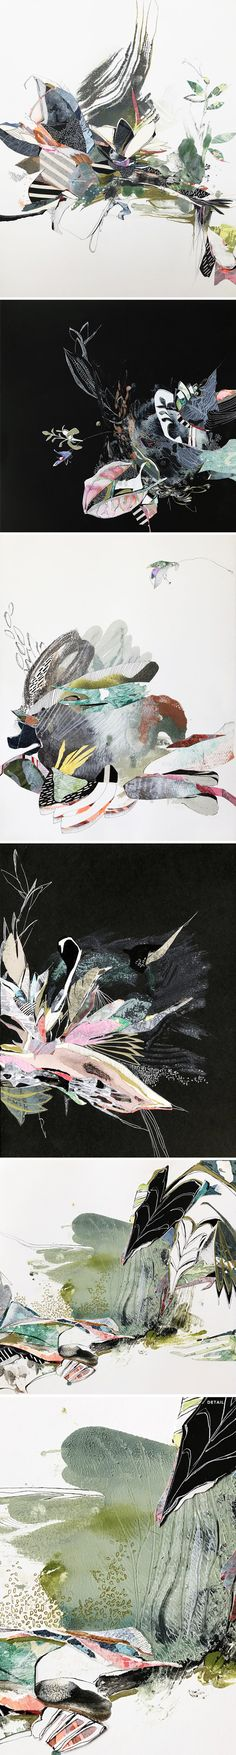 mixed media by kaylee dalton <3 #contemporaryart #mixedmedia #botanical